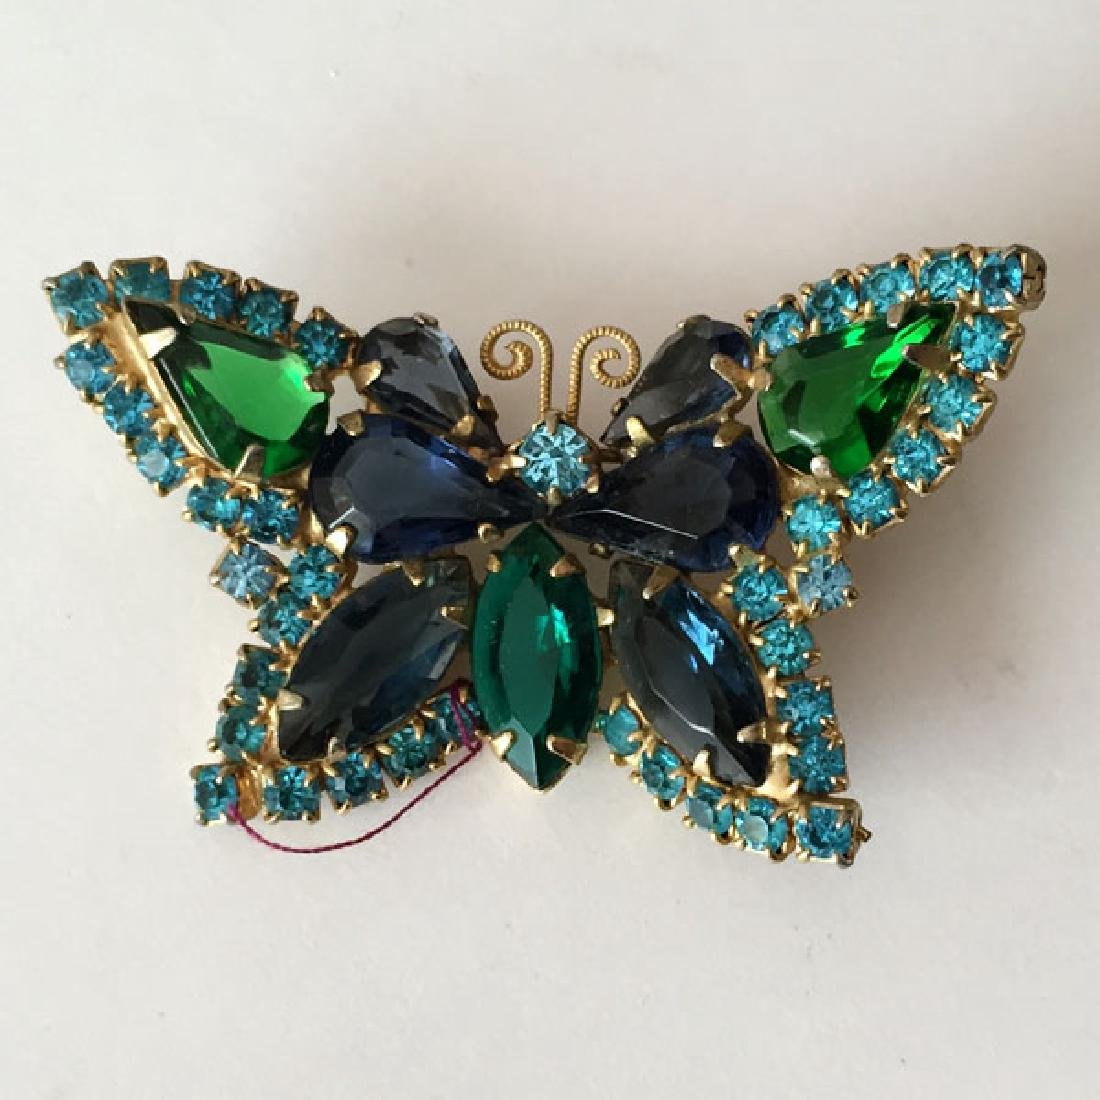 Vintage gold plated BUTTERFLY shaped brooch with prongs - 3